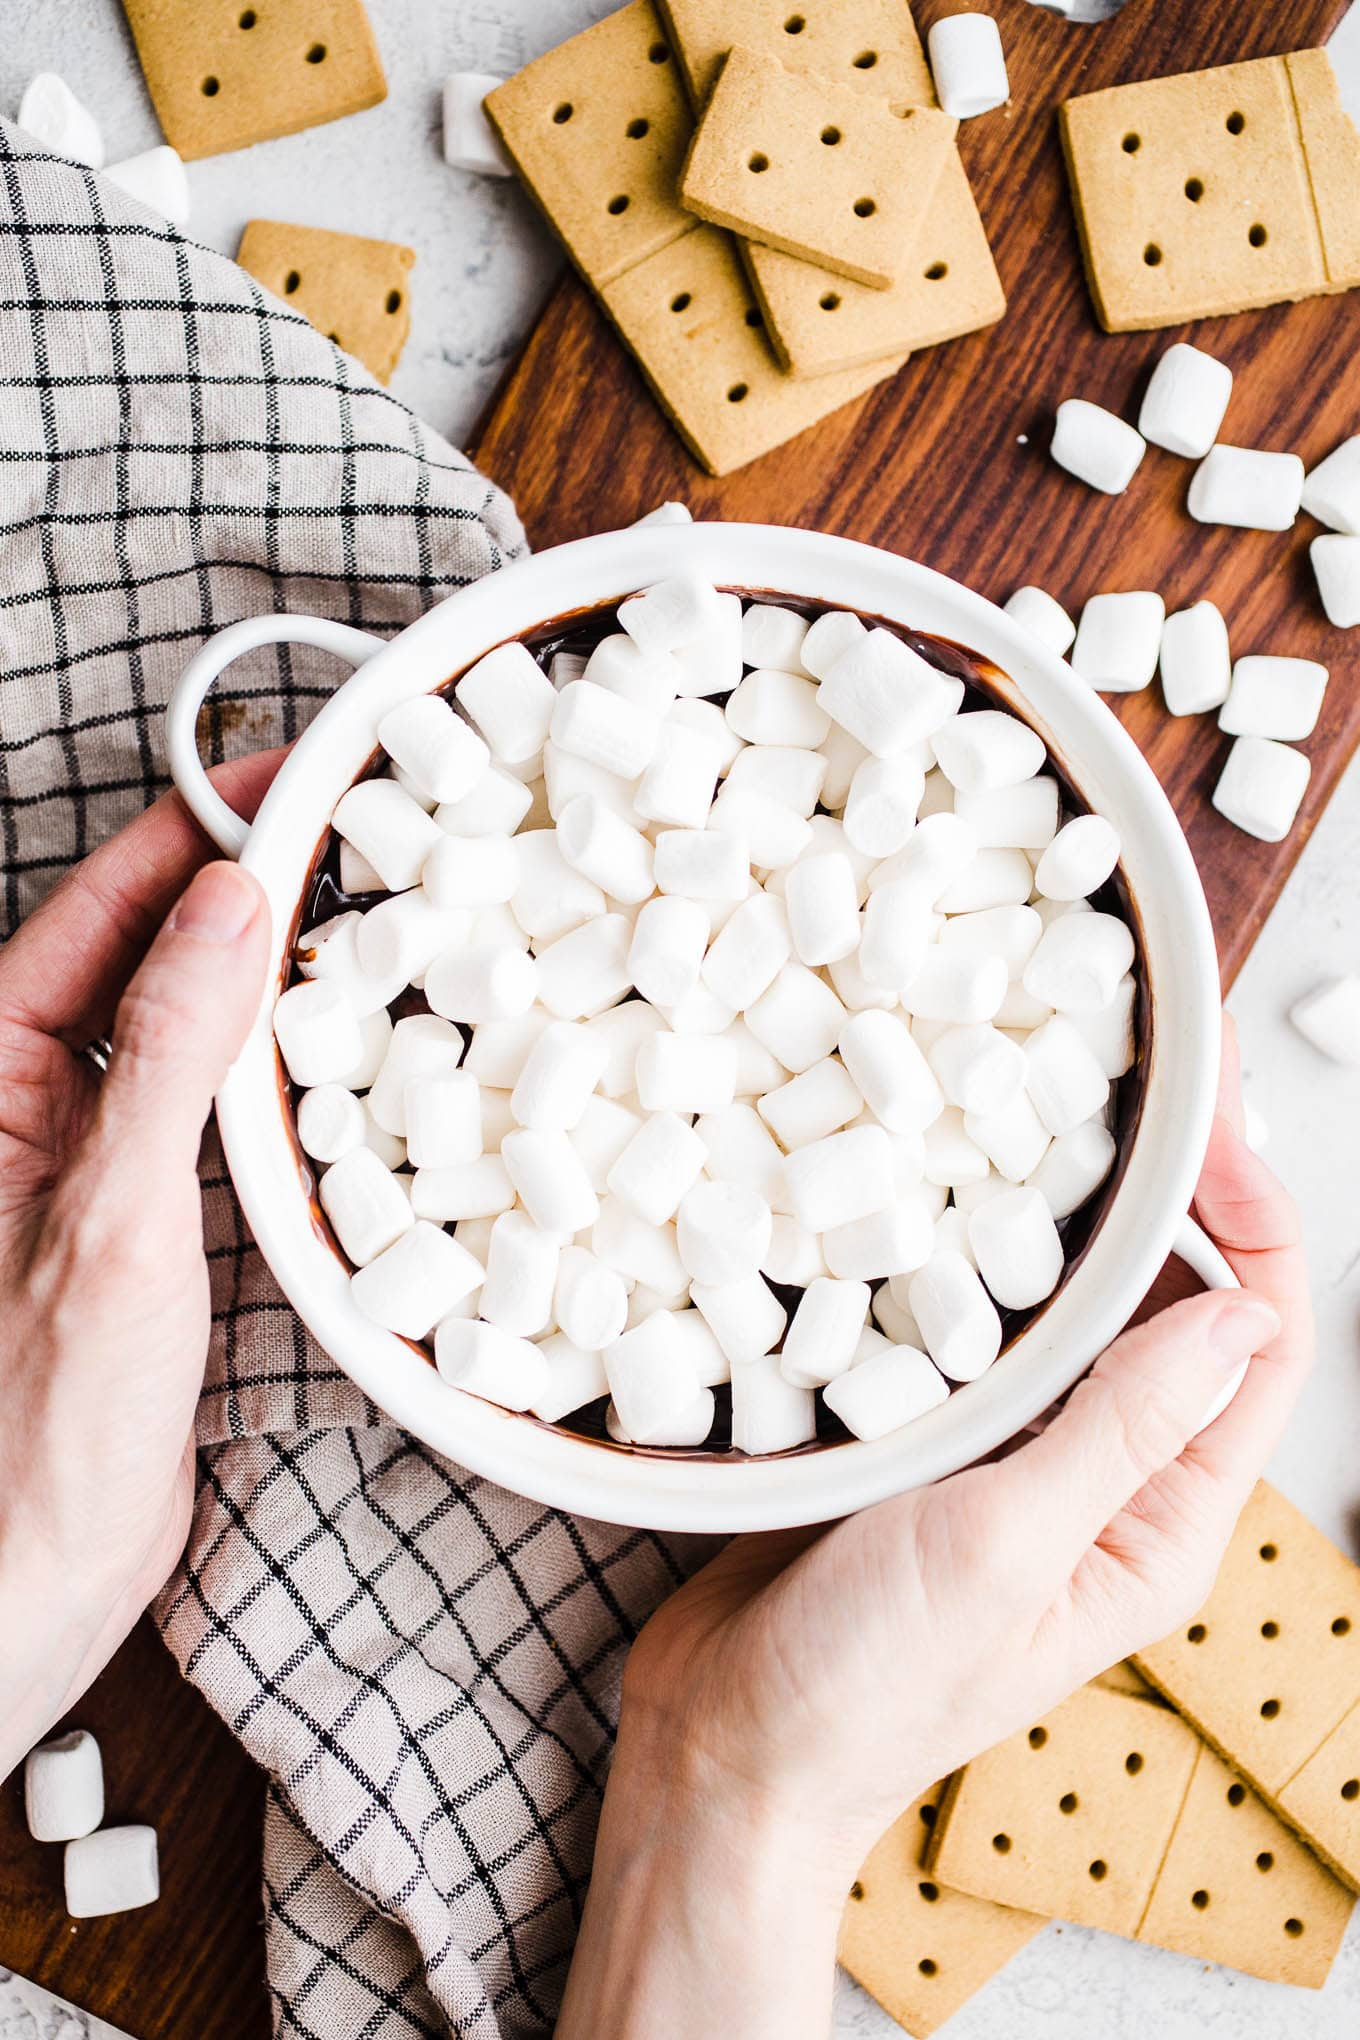 Chocolate dip topped with marshmallows